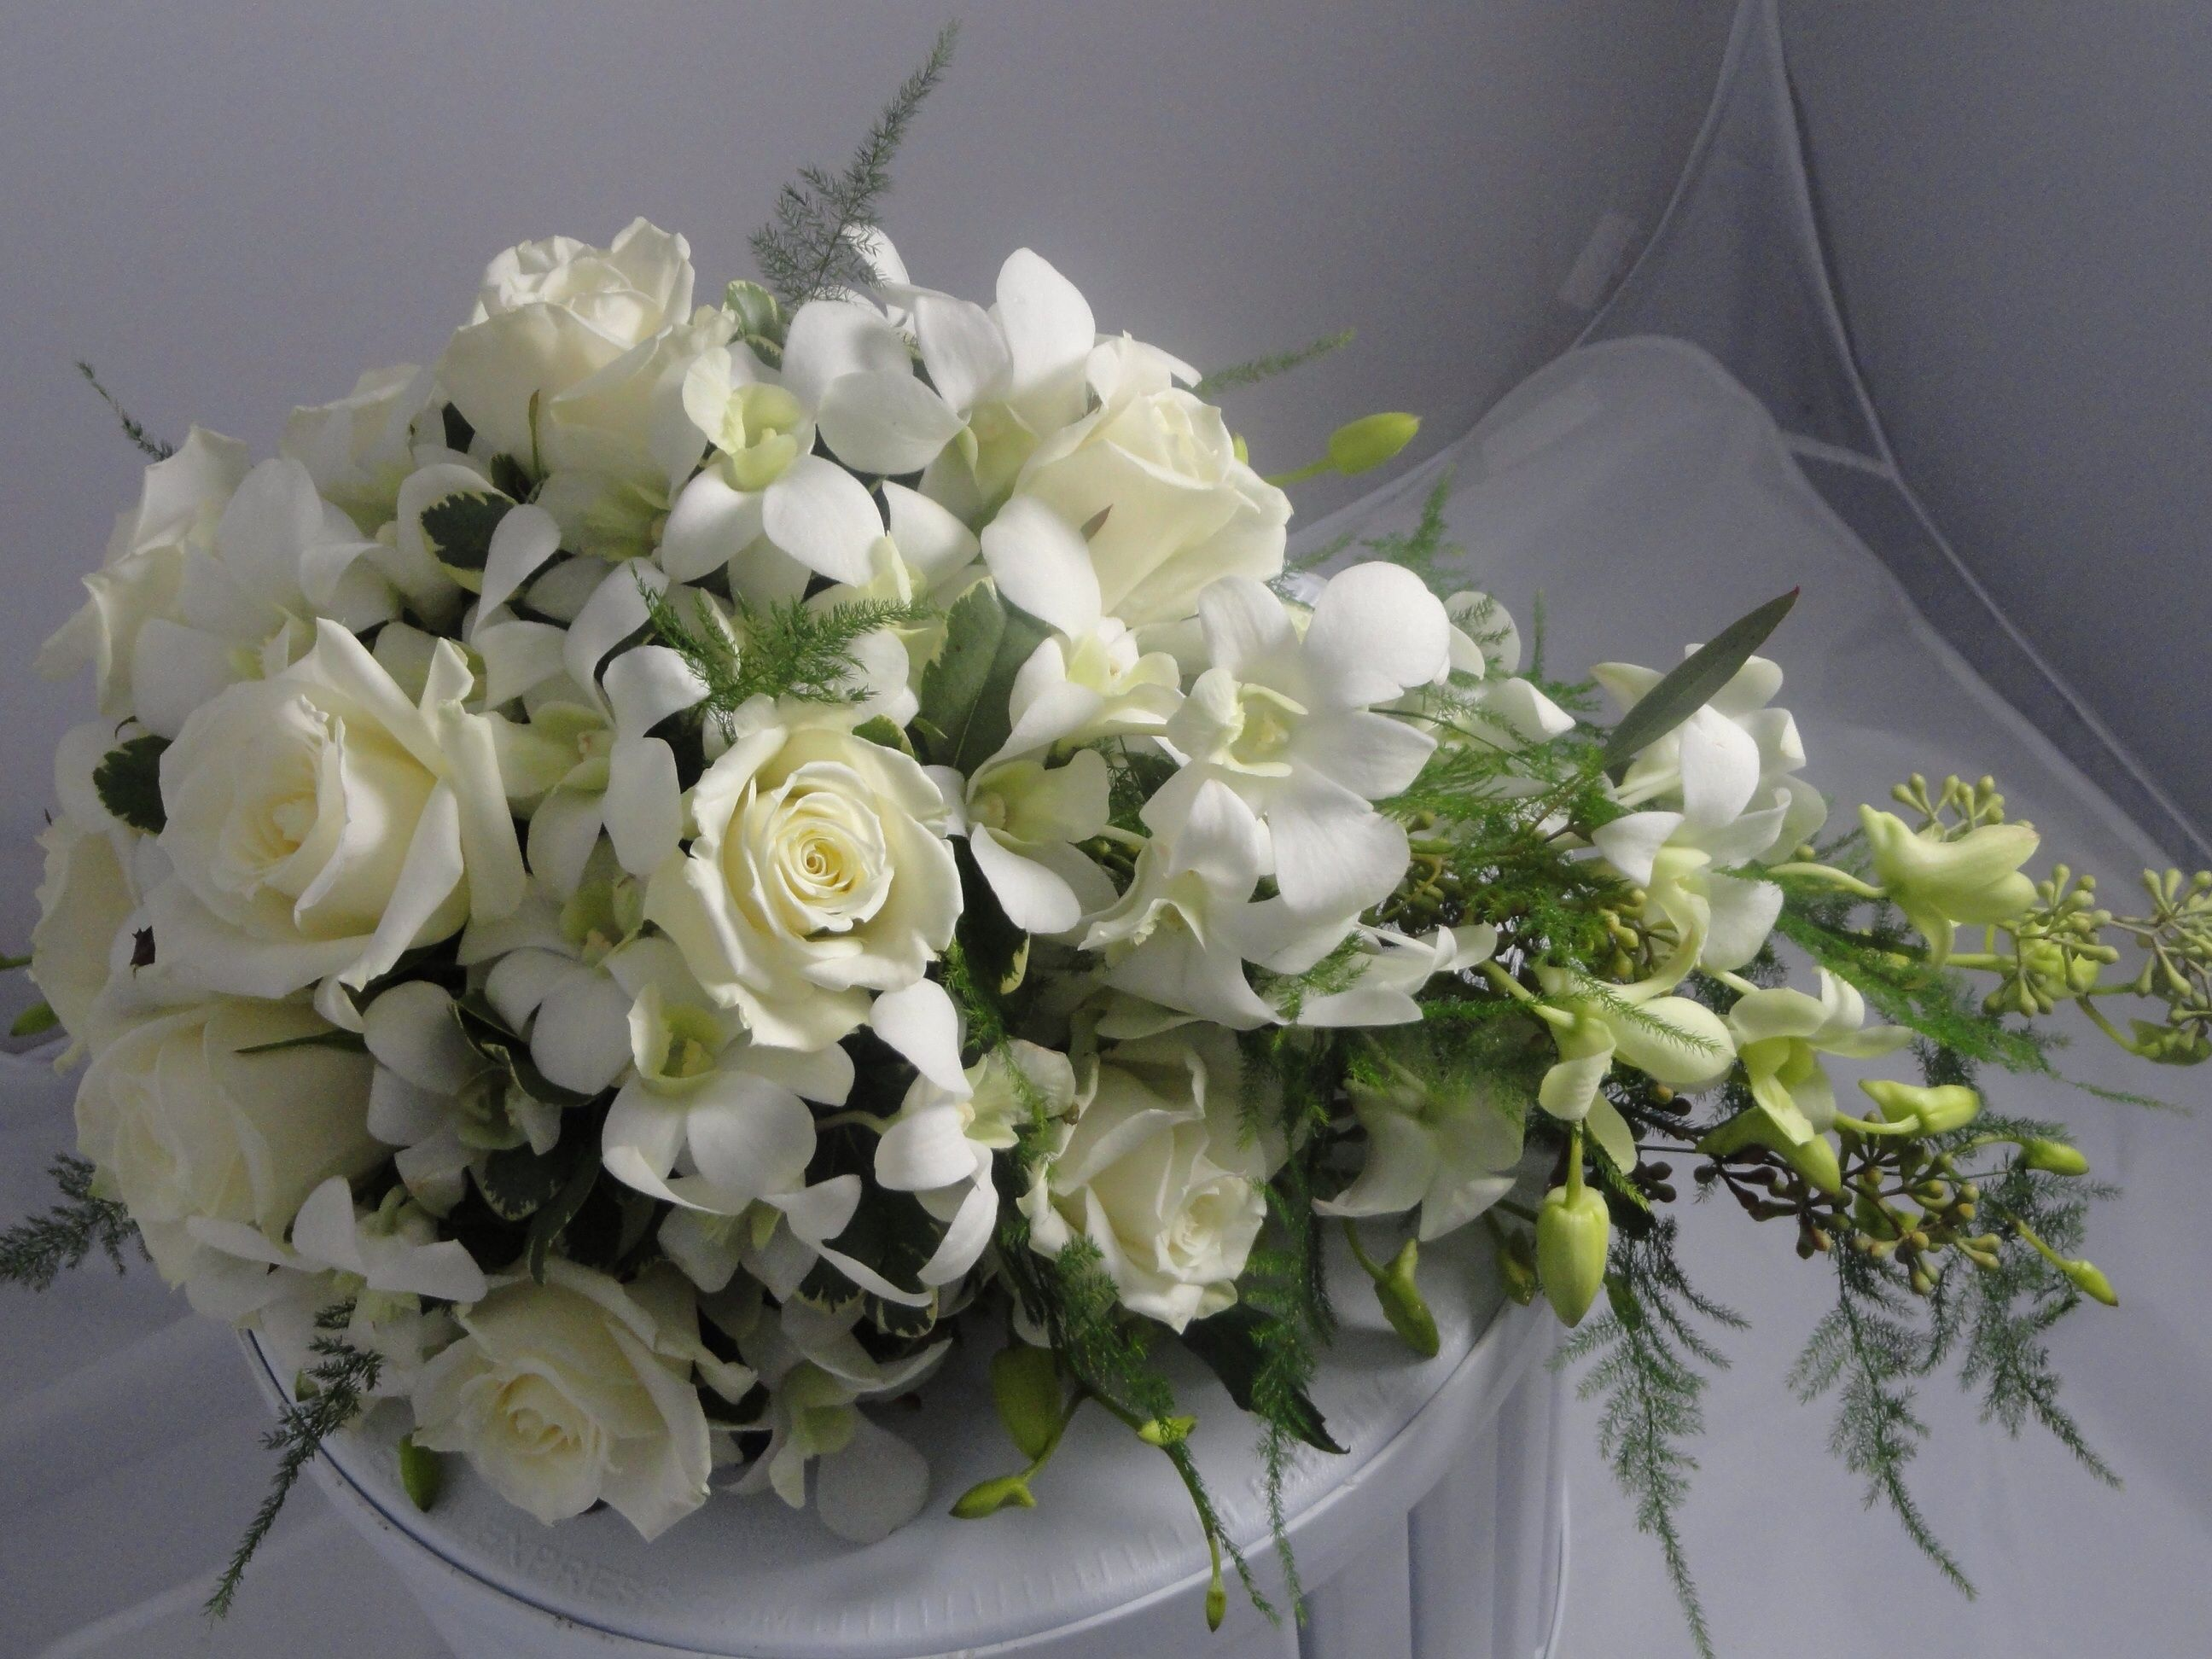 Cascading bouquet in green and white...white roses and white dendrobrium orchids, greens in fern and seeded eucalyptus